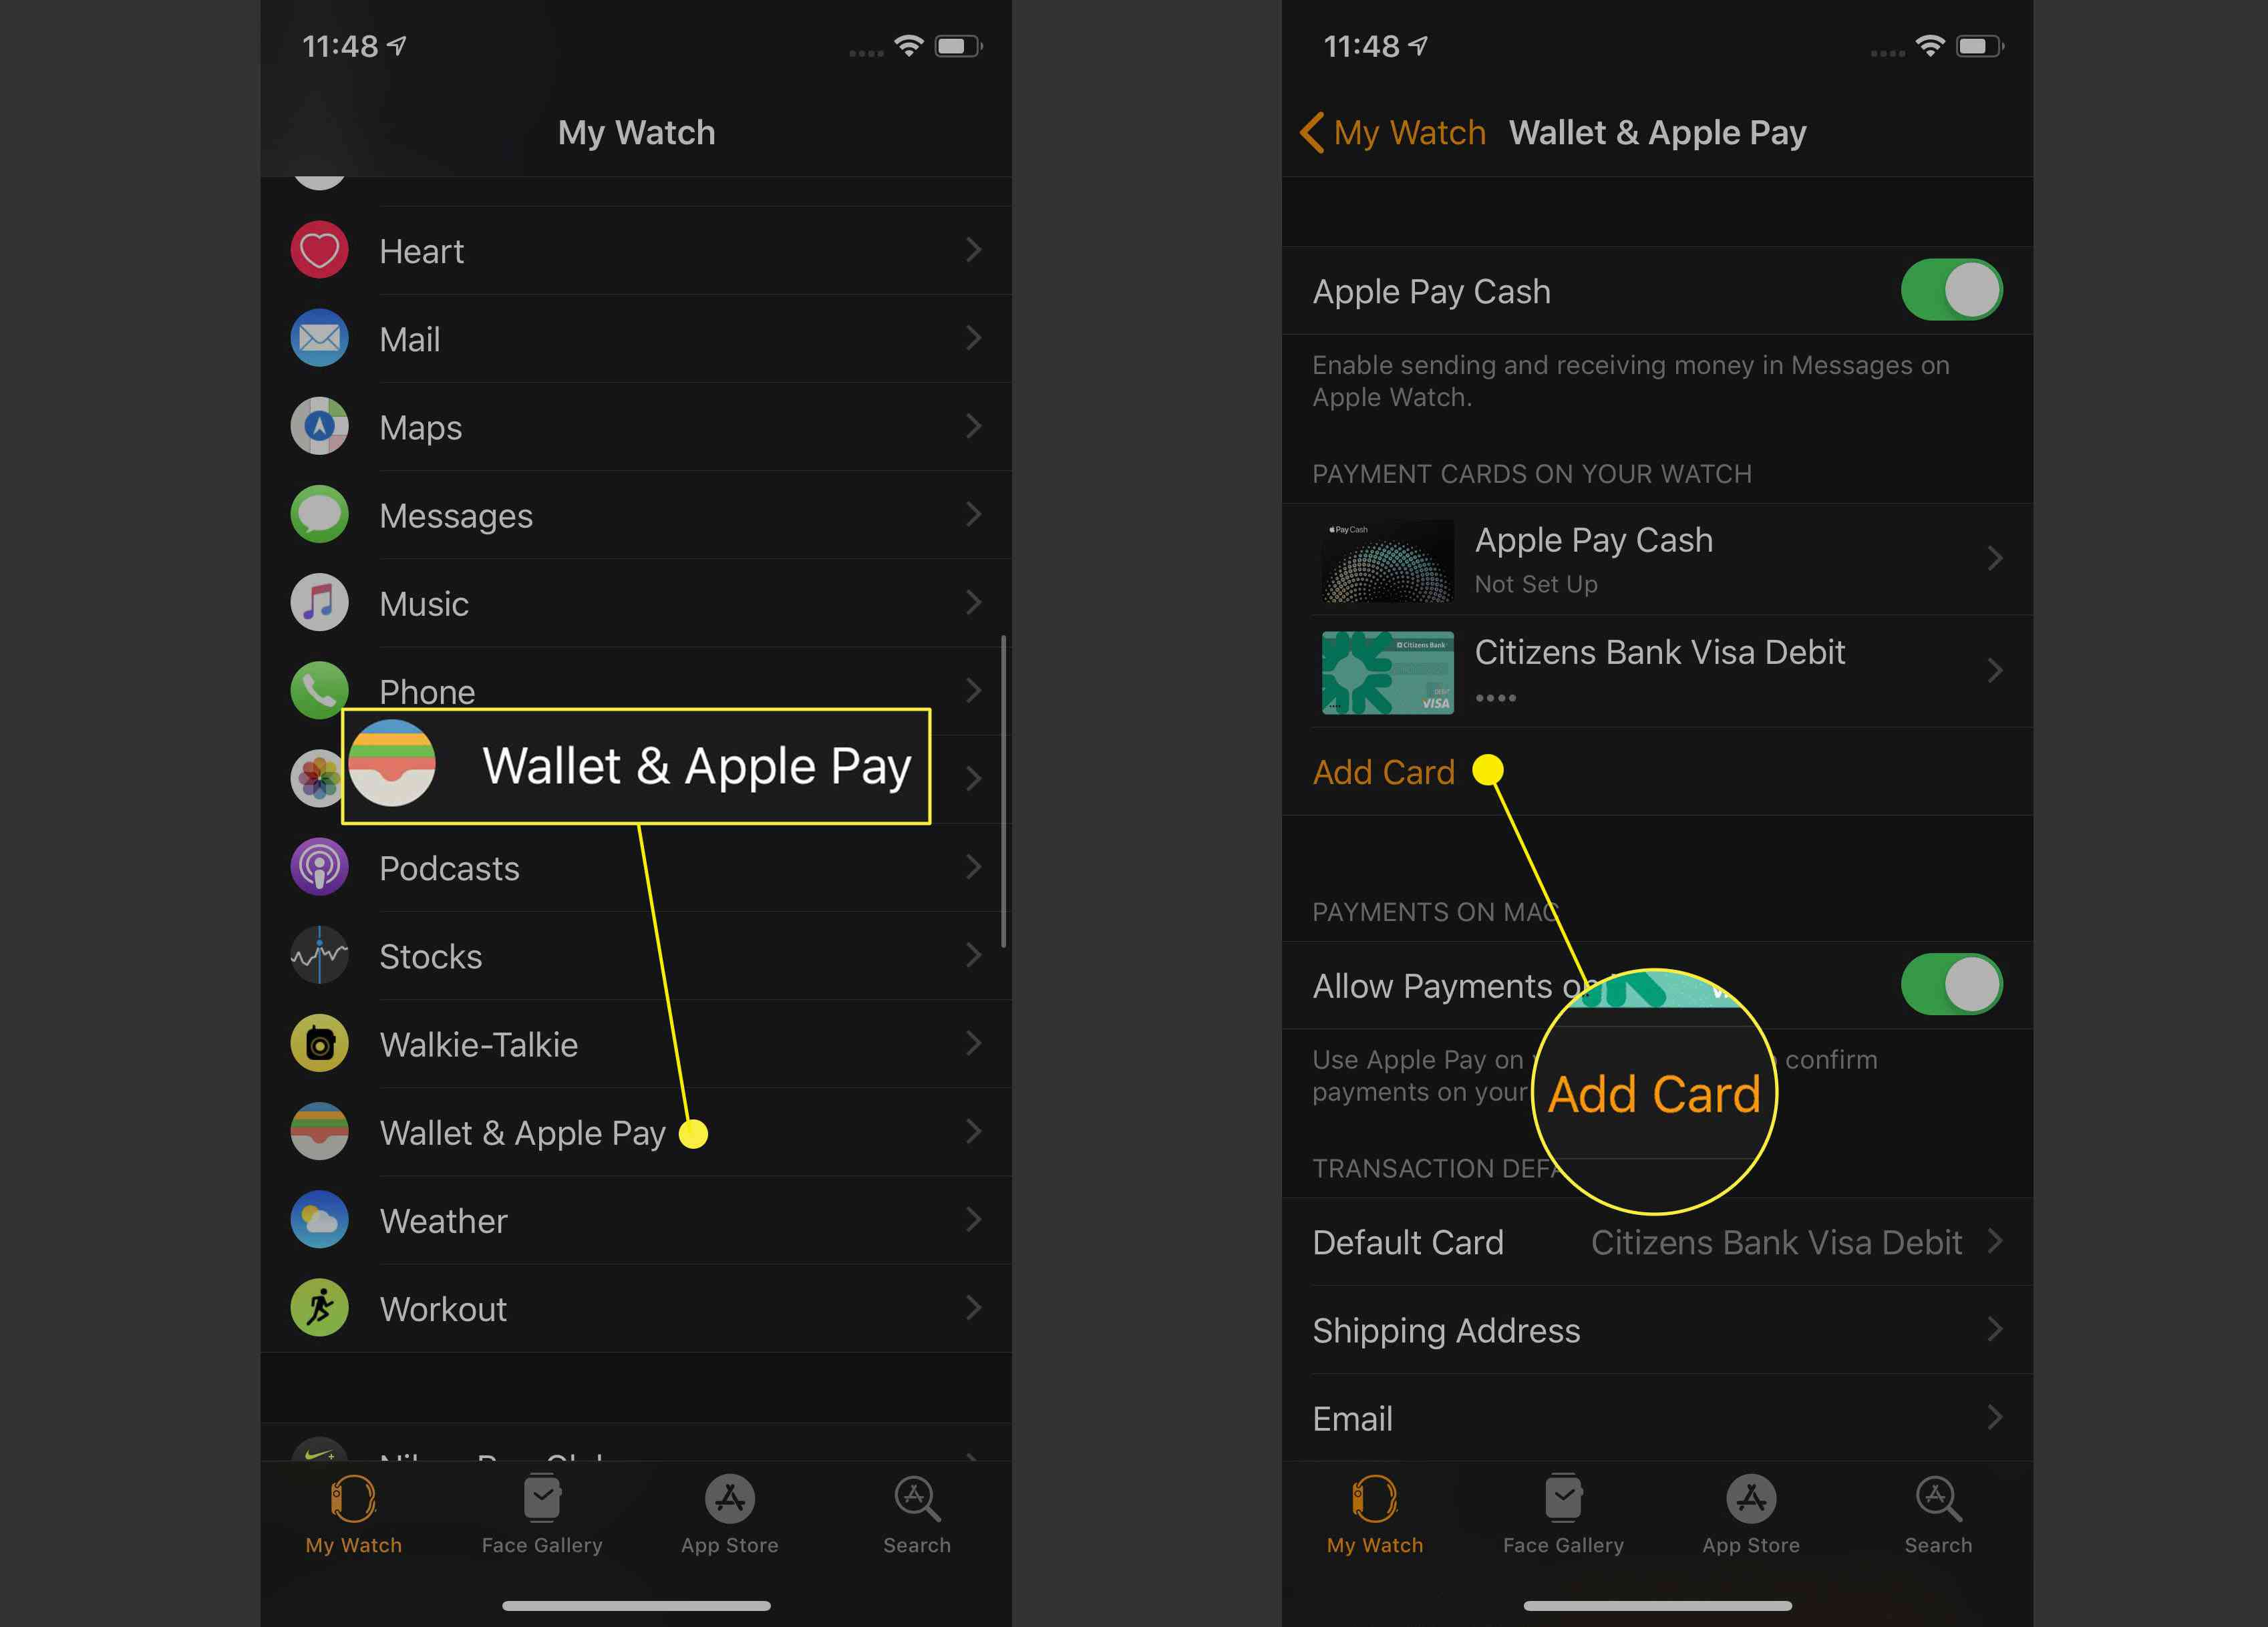 Adding a card in Wallet & Apply Pay.